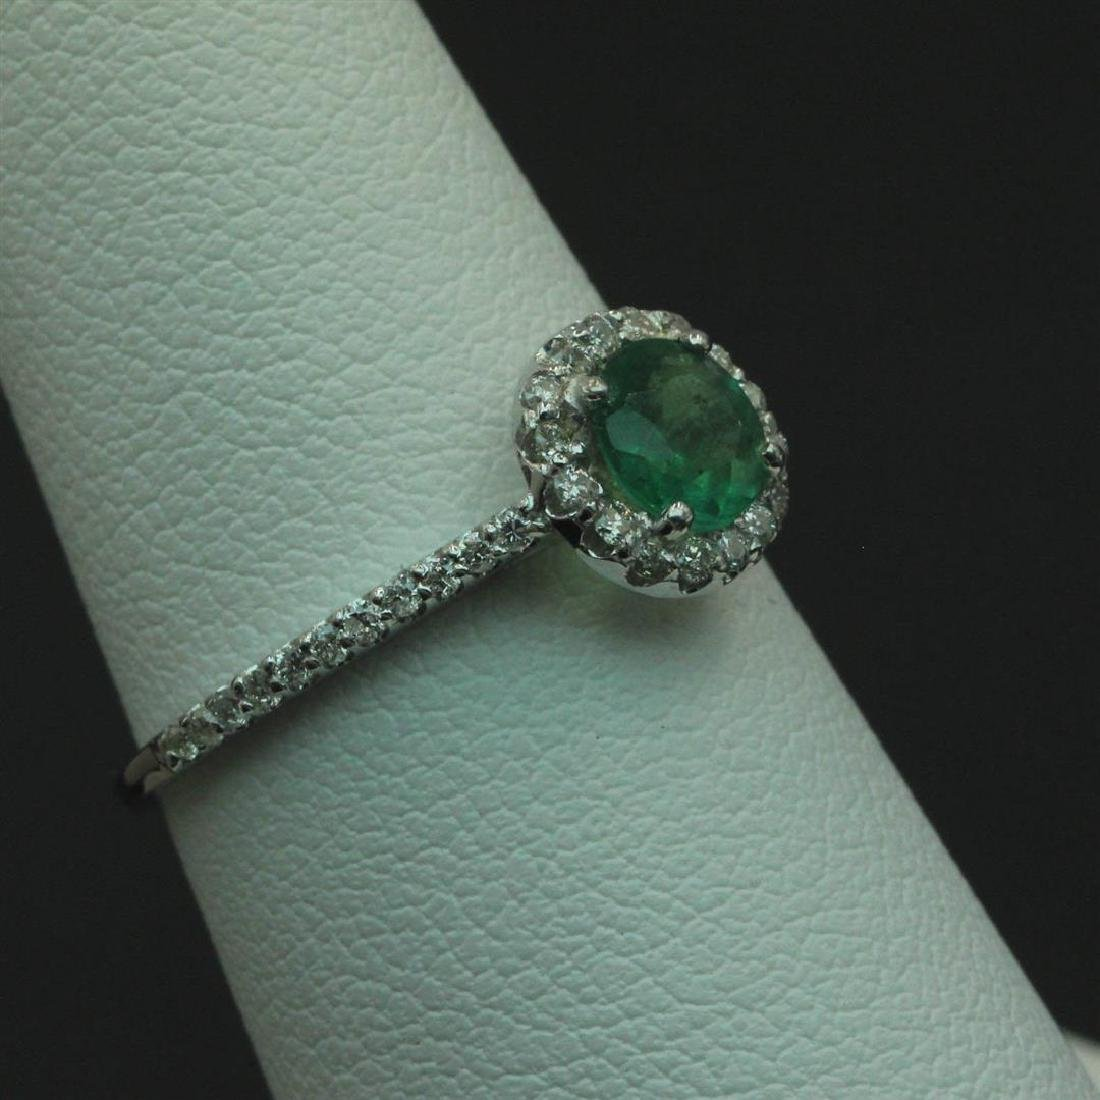 0.57 ctw Emerald and Diamond Ring - 14KT White Gold - 3